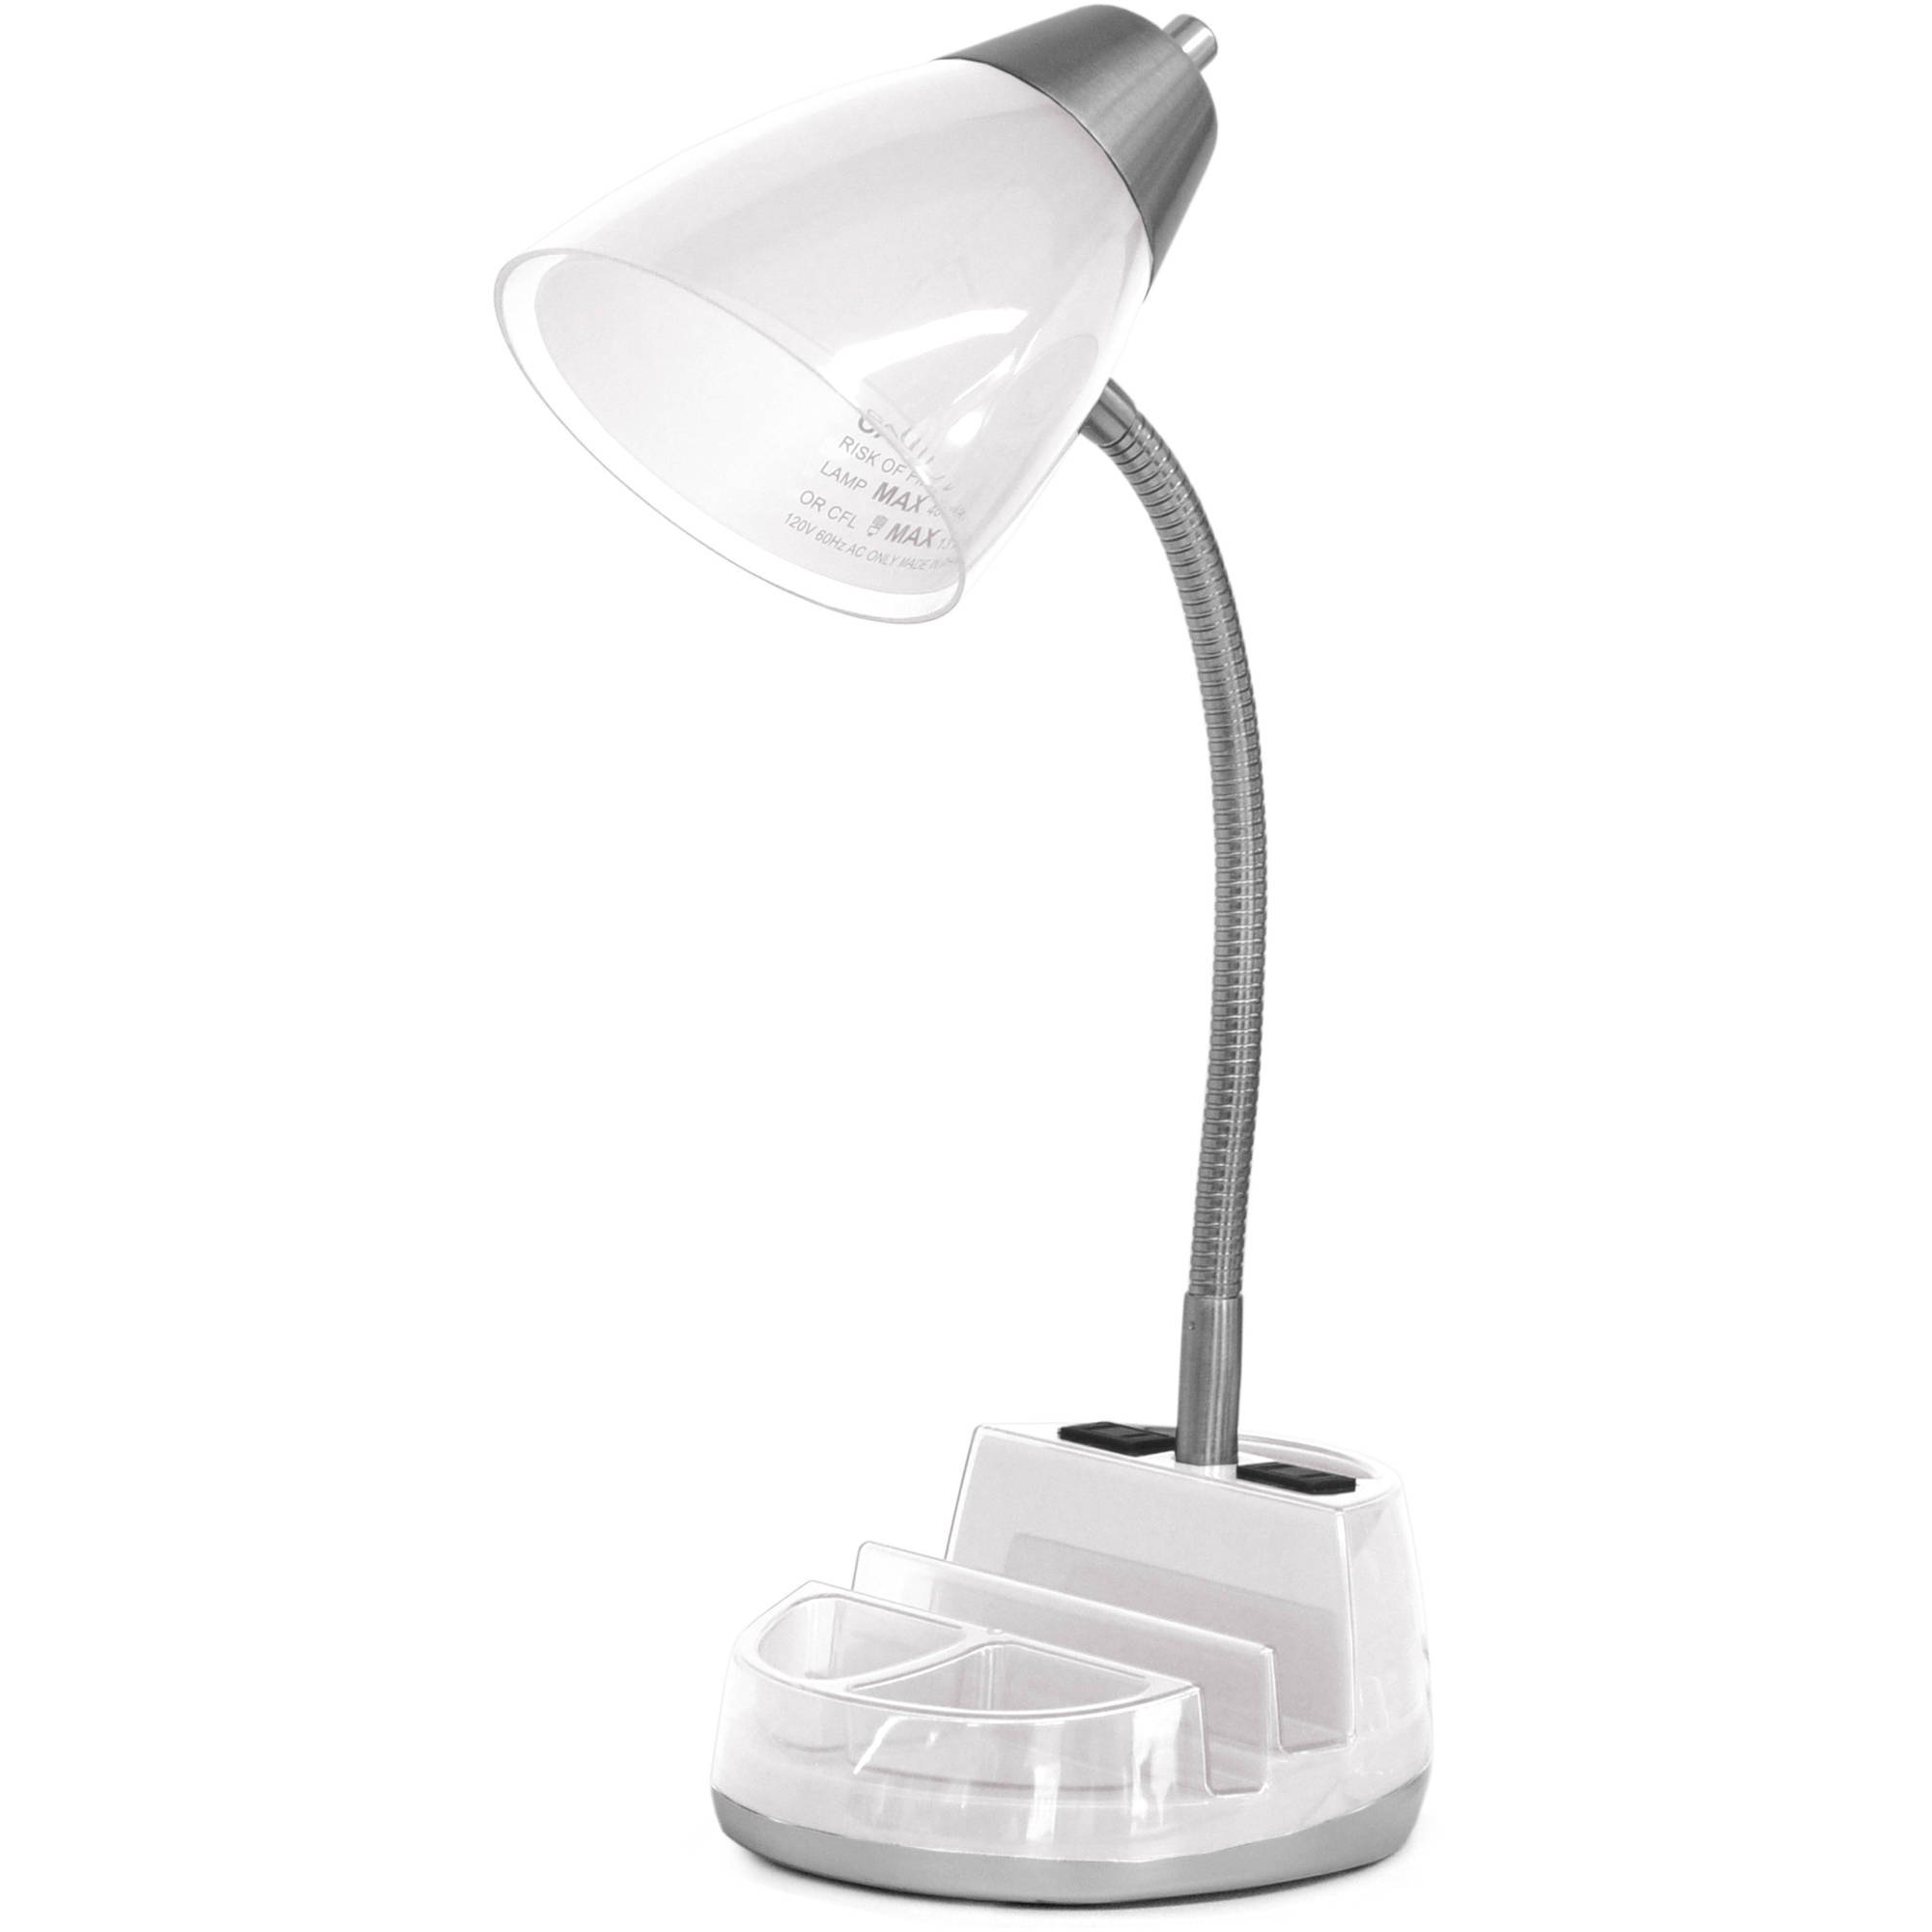 Mainstays Tablet Organizer Desk Lamp with CFL Bulb - Walmart.com